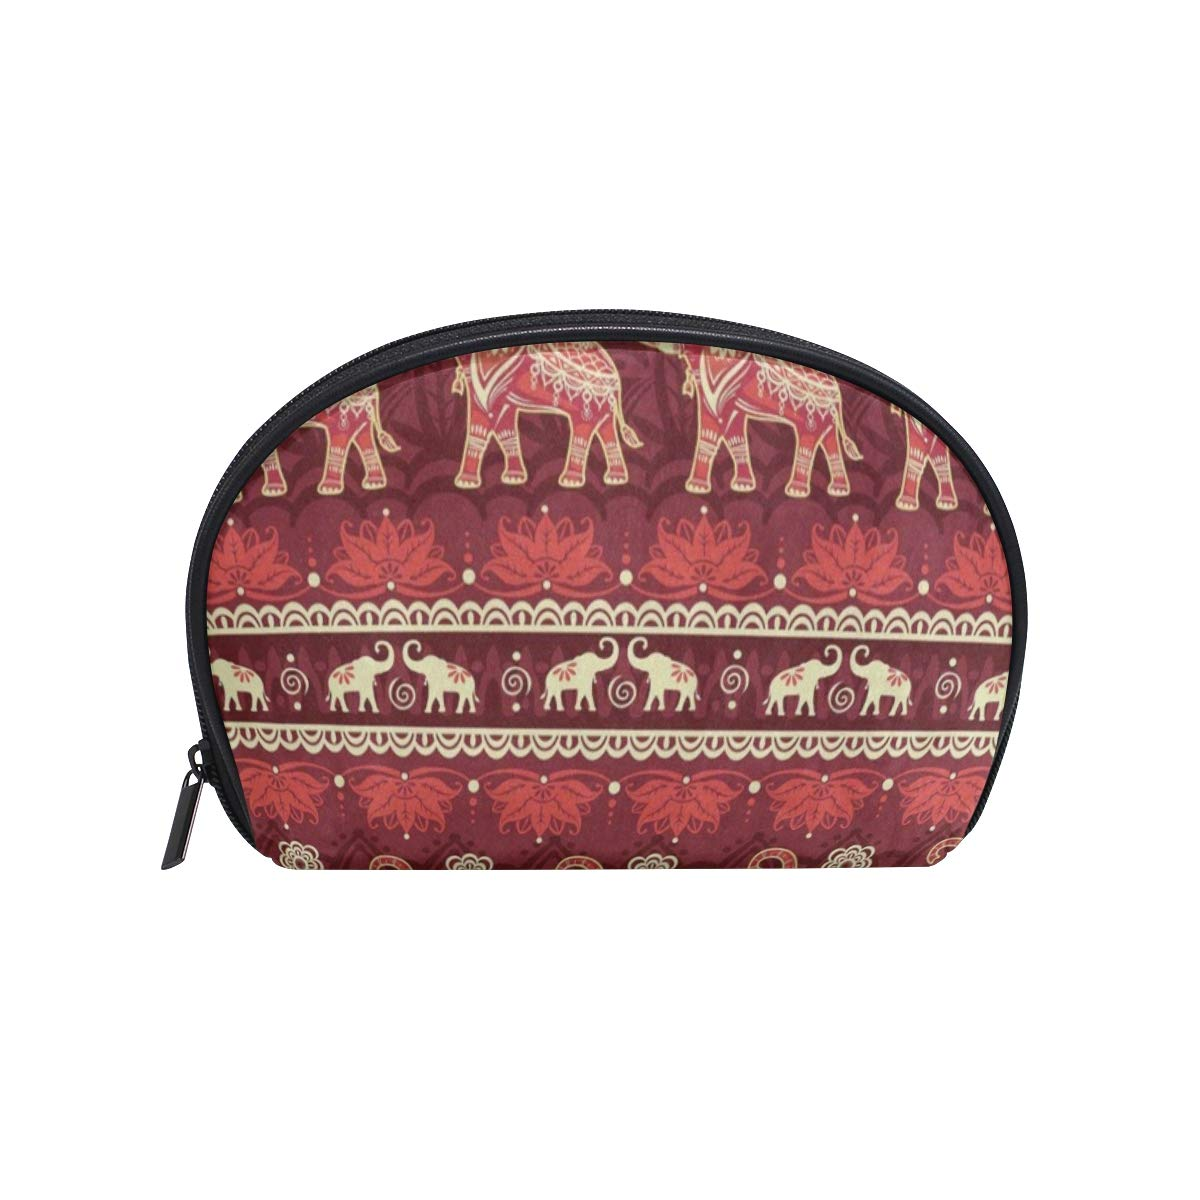 Red Elephant Animal Mandala Half Moon Cosmetic Makeup Toiletry Bag Pouch Travel Handy Shell Purse Organizer Storage Beauty Bag Holder for Women Girls